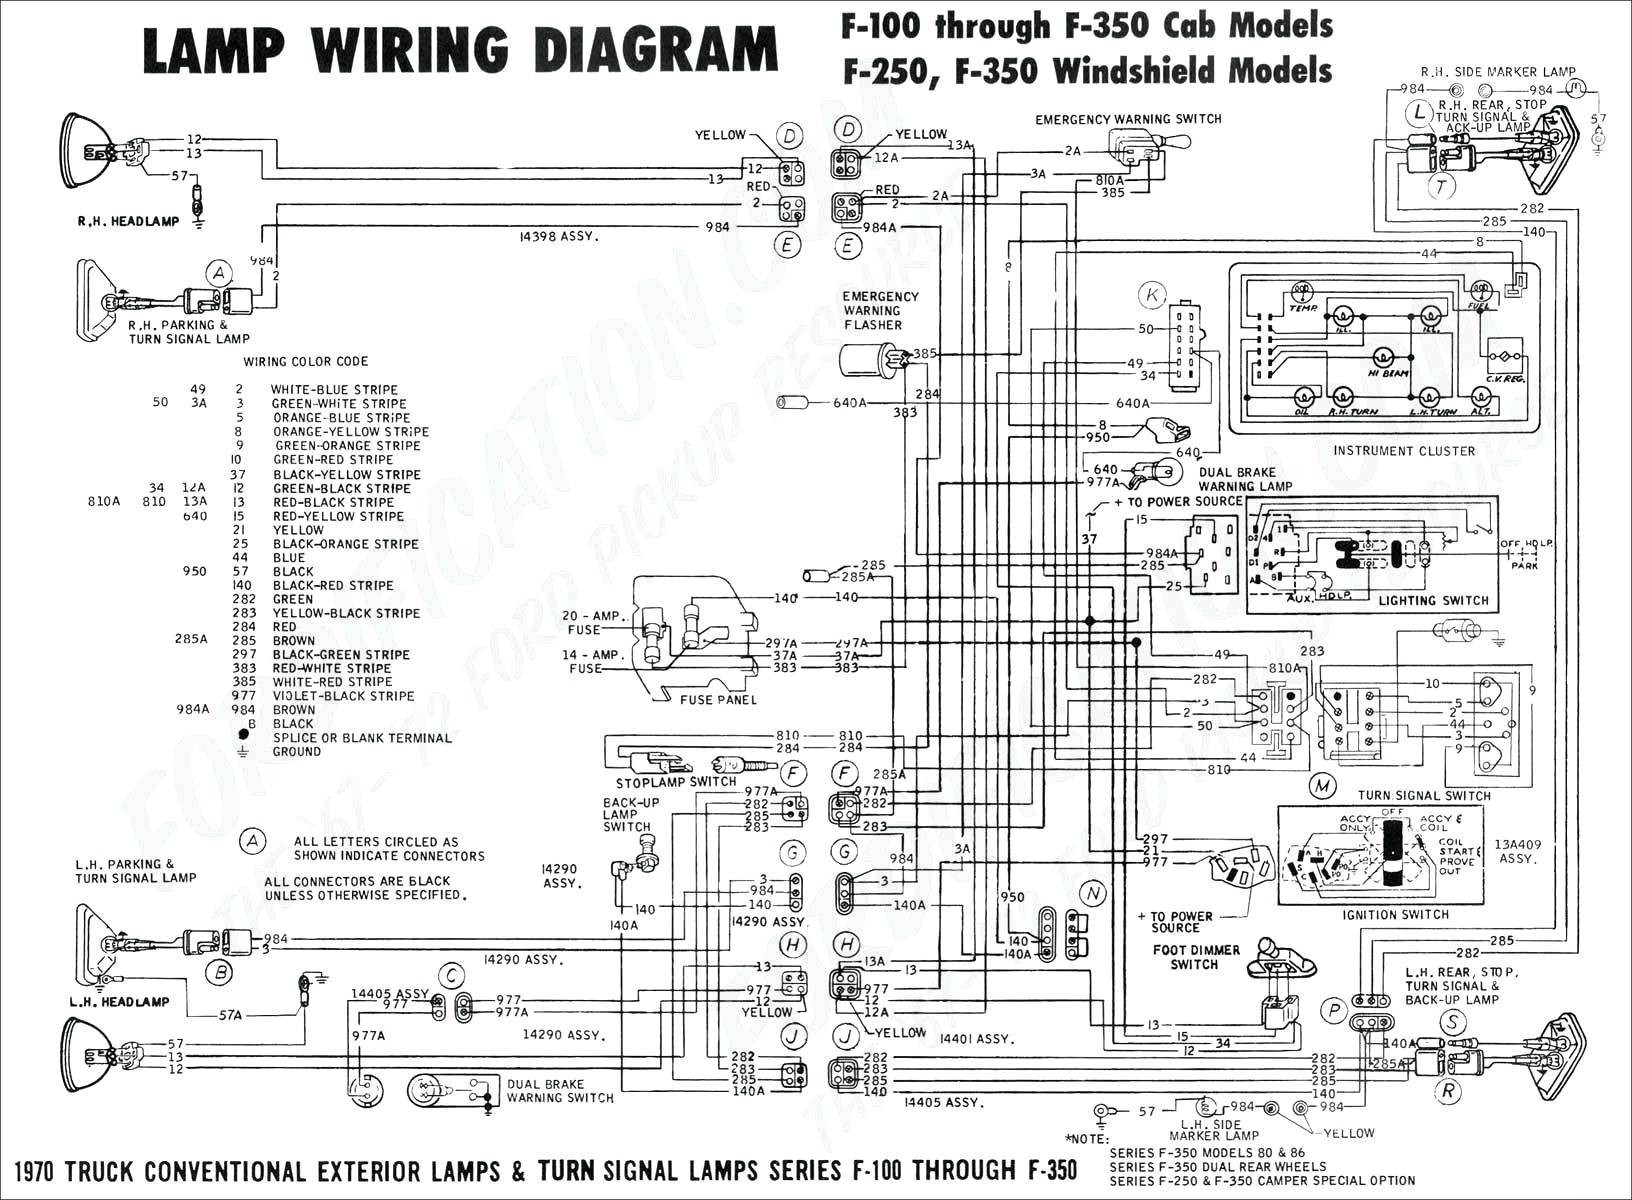 2001 Chrysler Voyager Wiring Diagram 2001 Chrysler Voyager Wiring